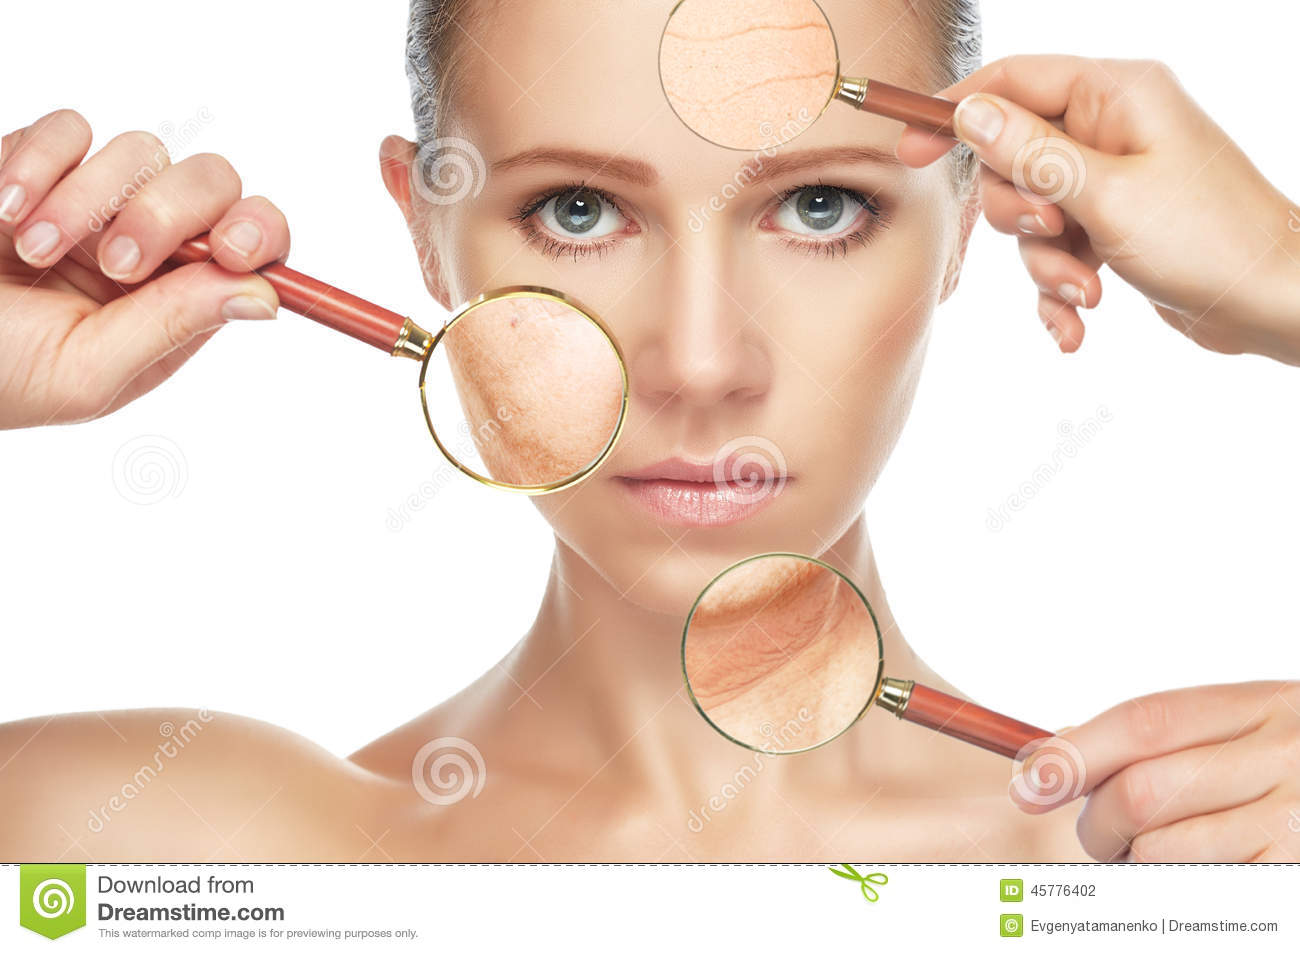 Facial skin procedures